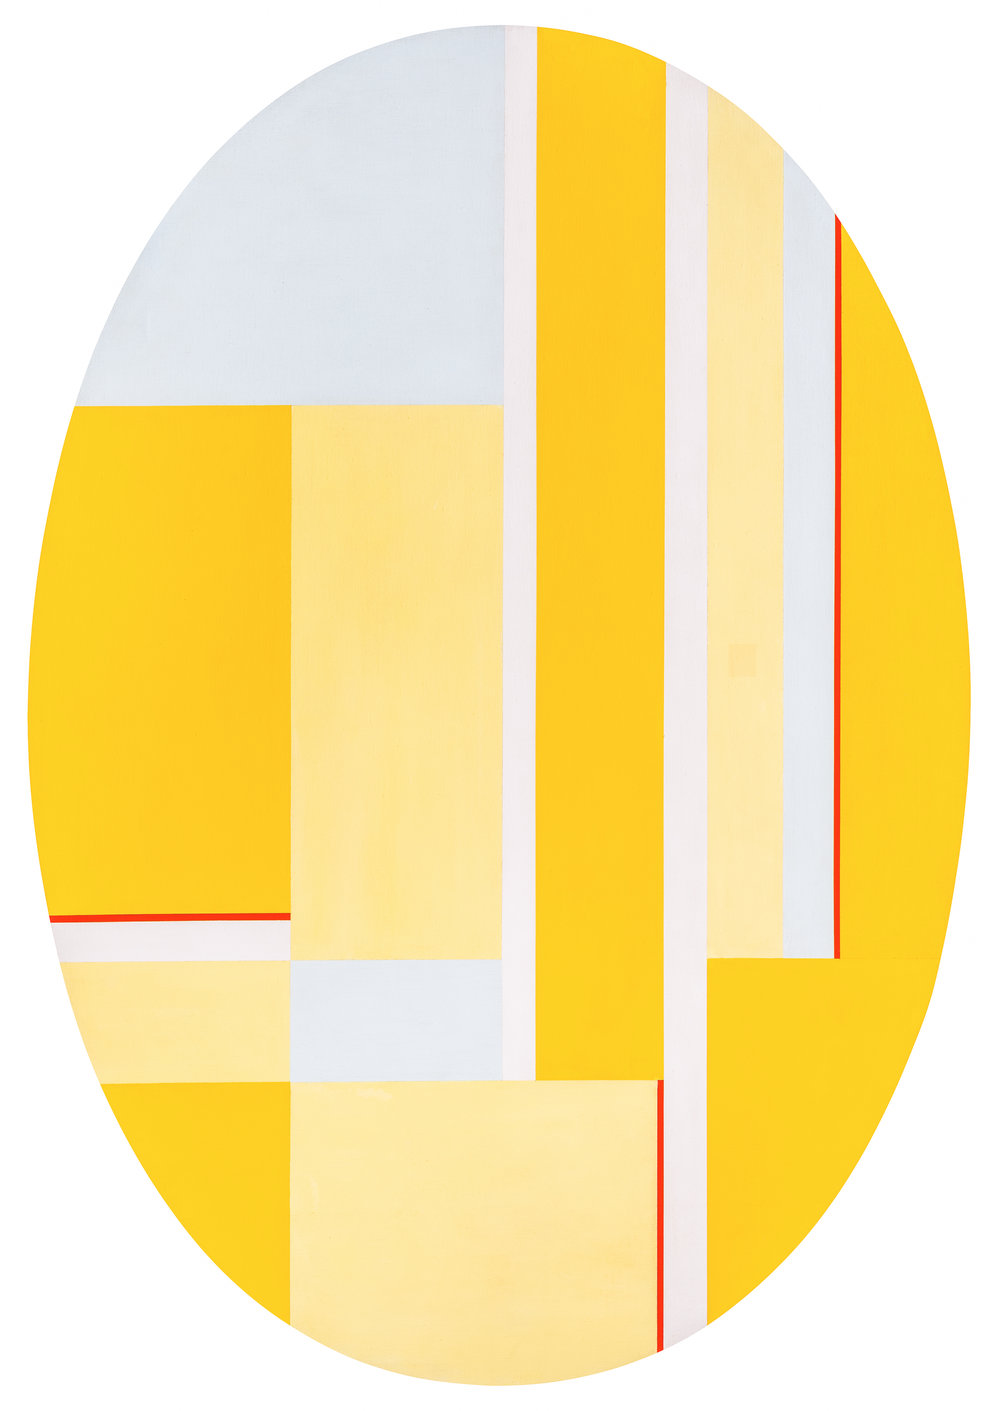 Ellipse with Yellows,   Acrylic on canvas, 1977, 51 1/2 x 35 1/2 inches